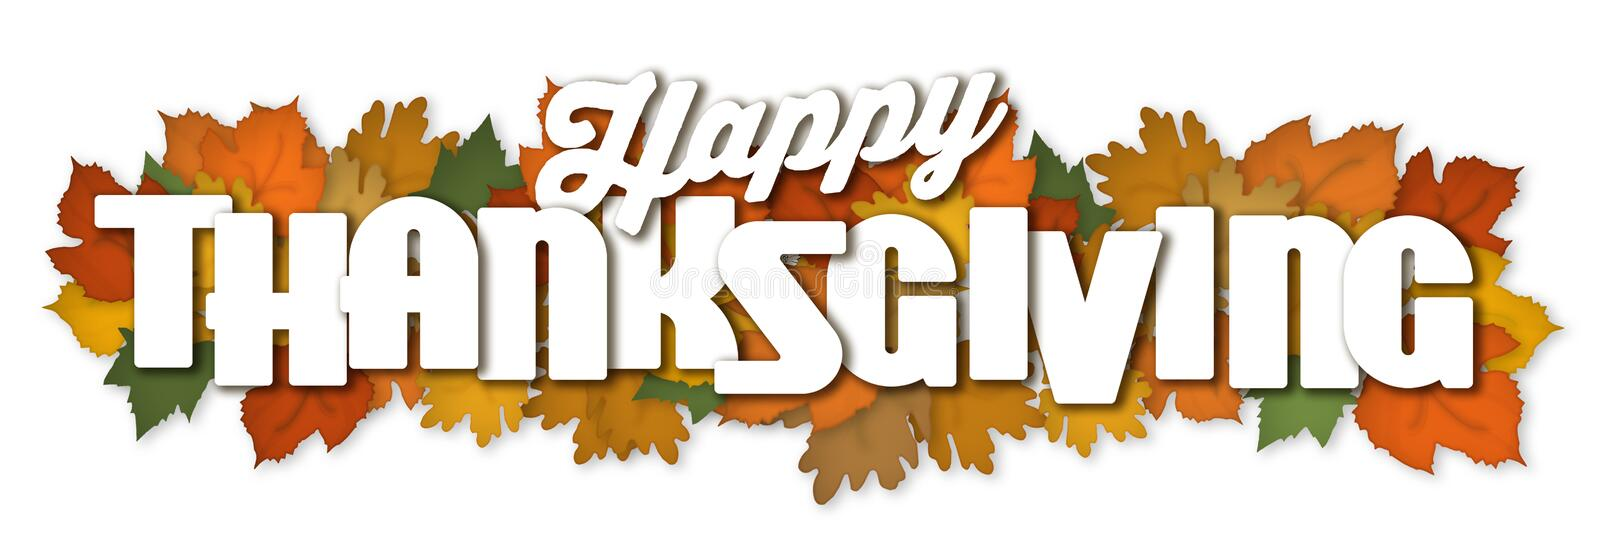 Happy Thanksgiving Banner Art Autumn Leaves stock illustration